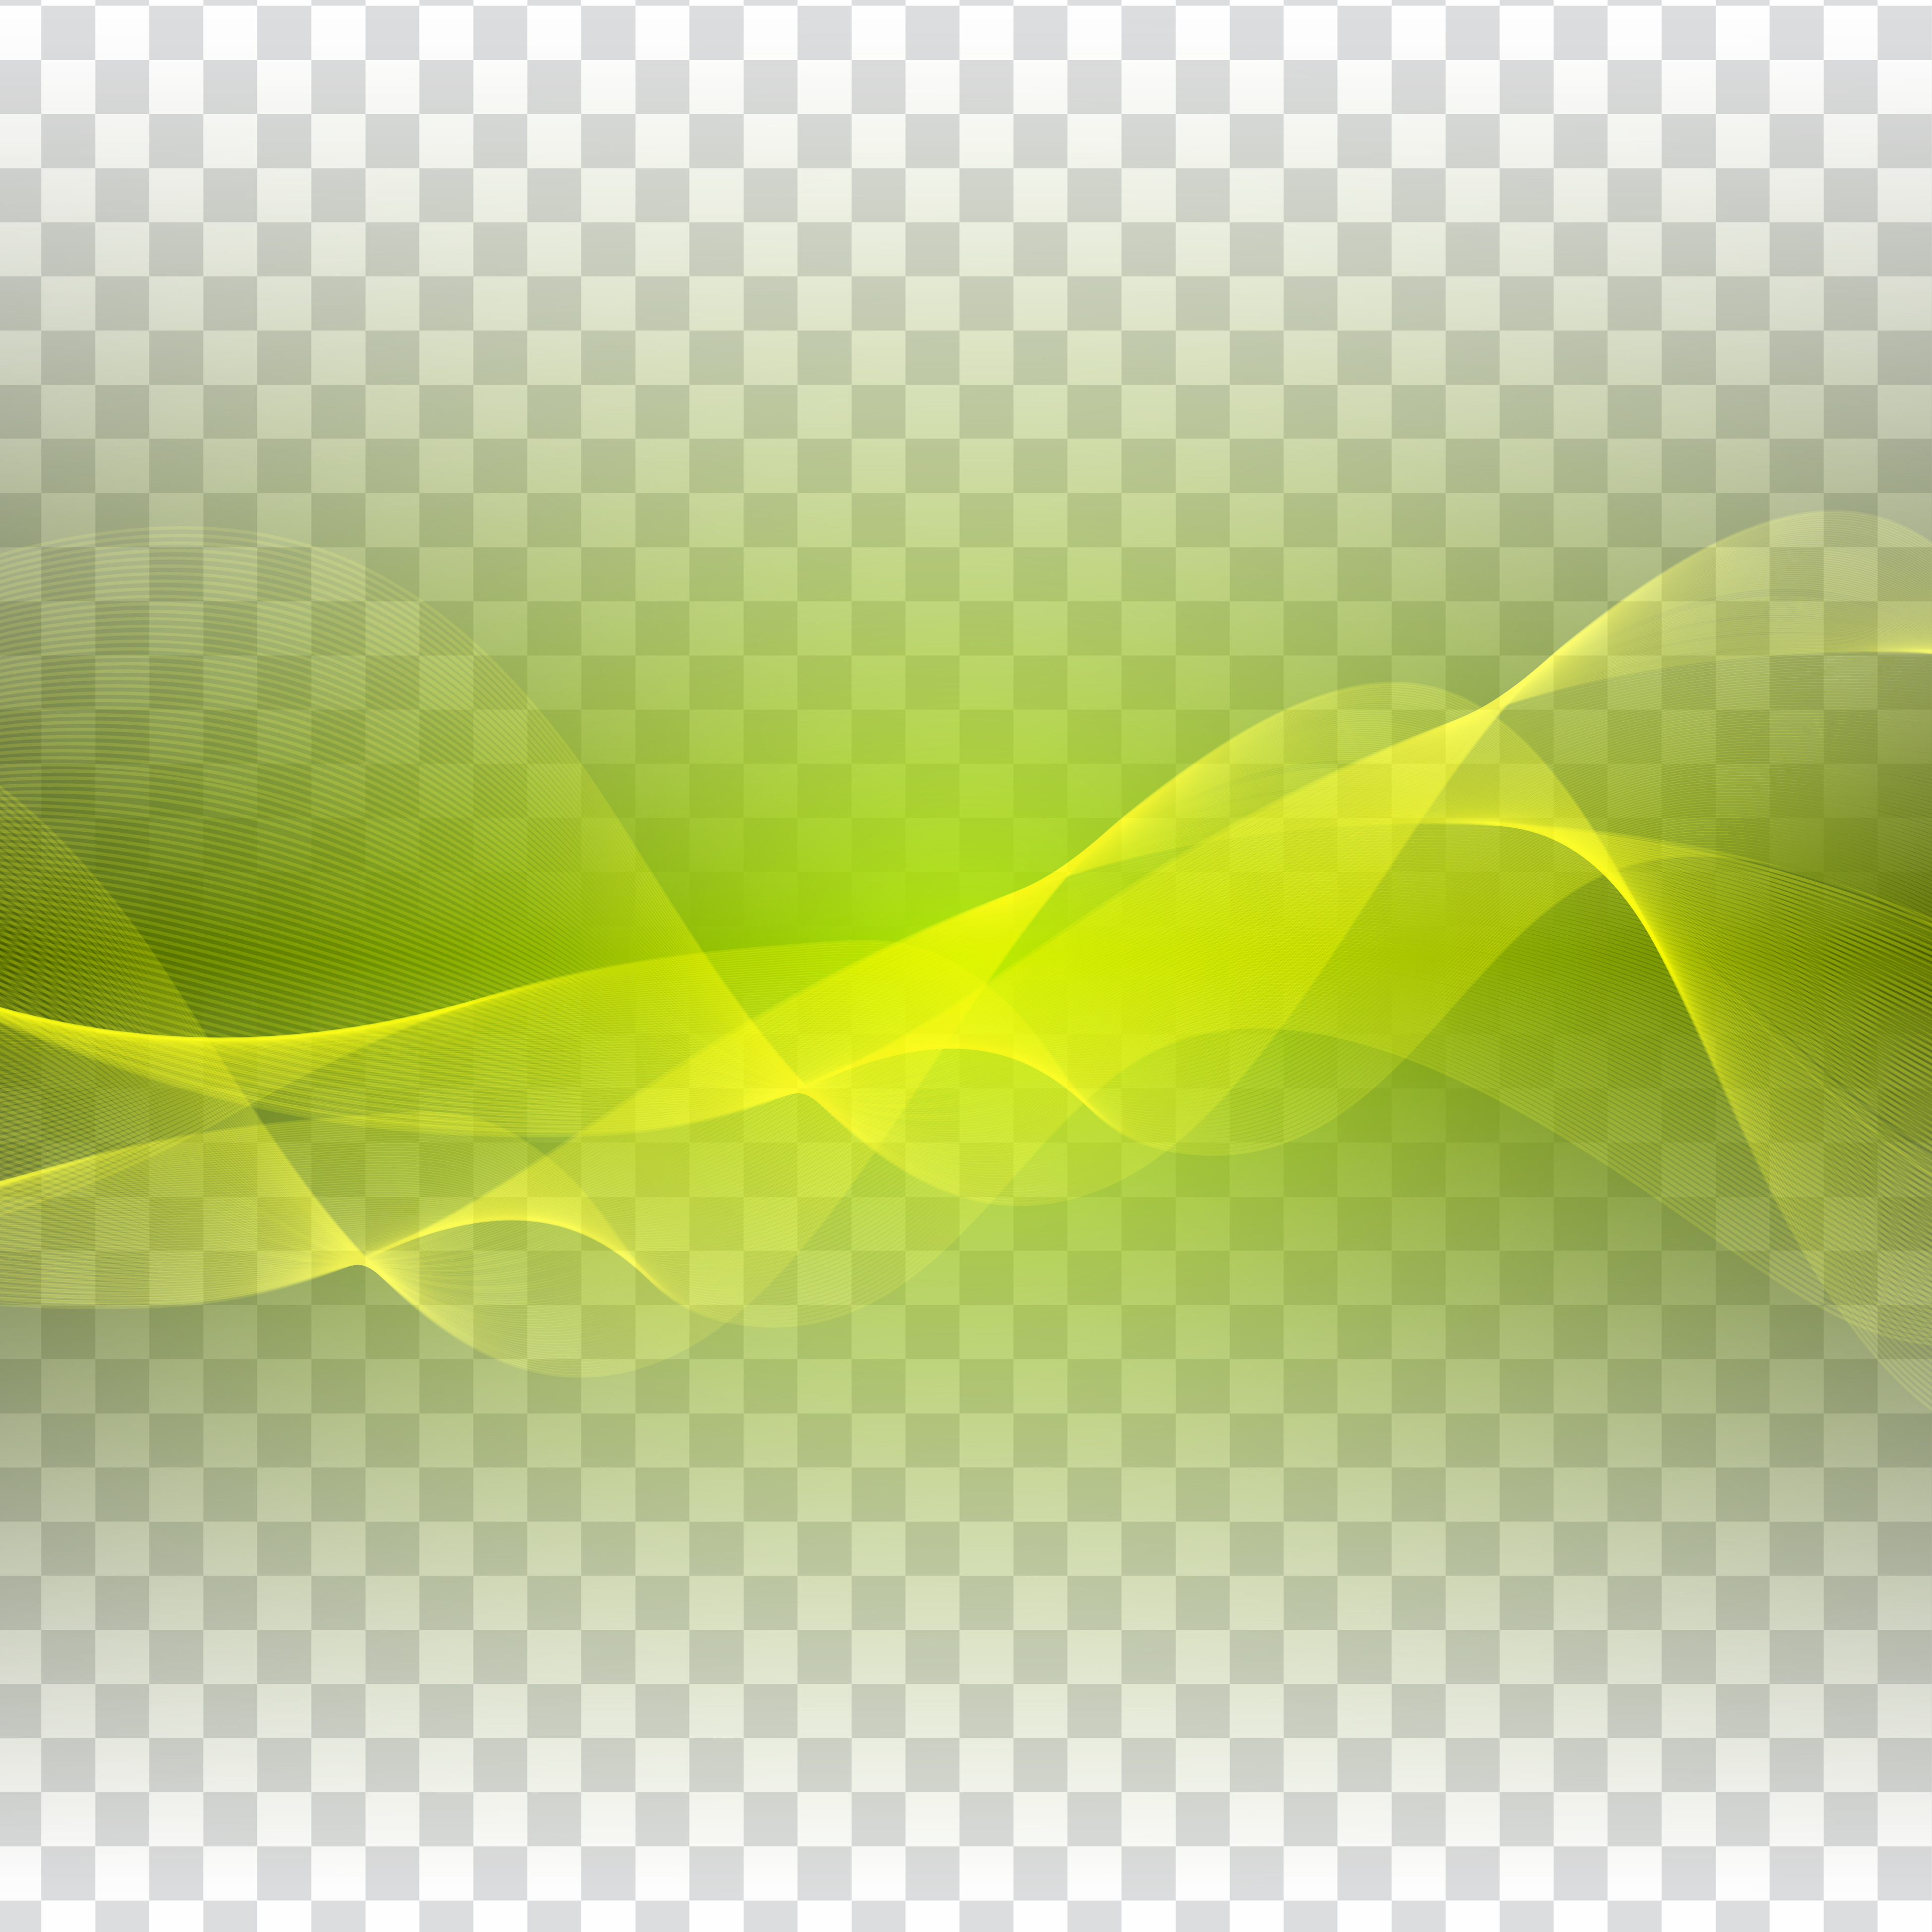 Abstract Green Wave Design On Transparent Background